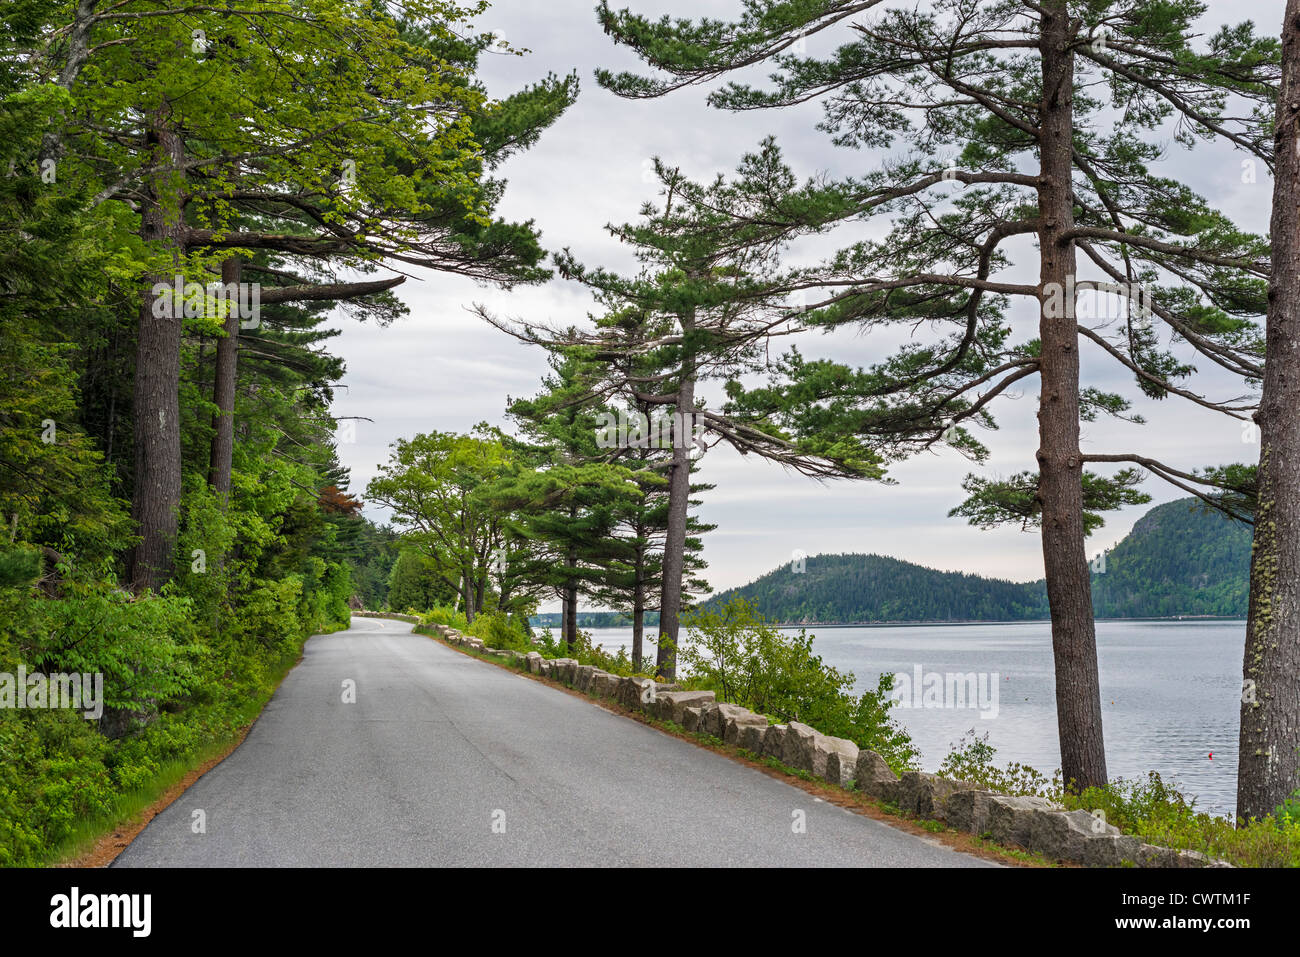 Sargent Drive alongside Somes Sound in Acadia National Park, Mount Desert Island, Maine, USA - Stock Image